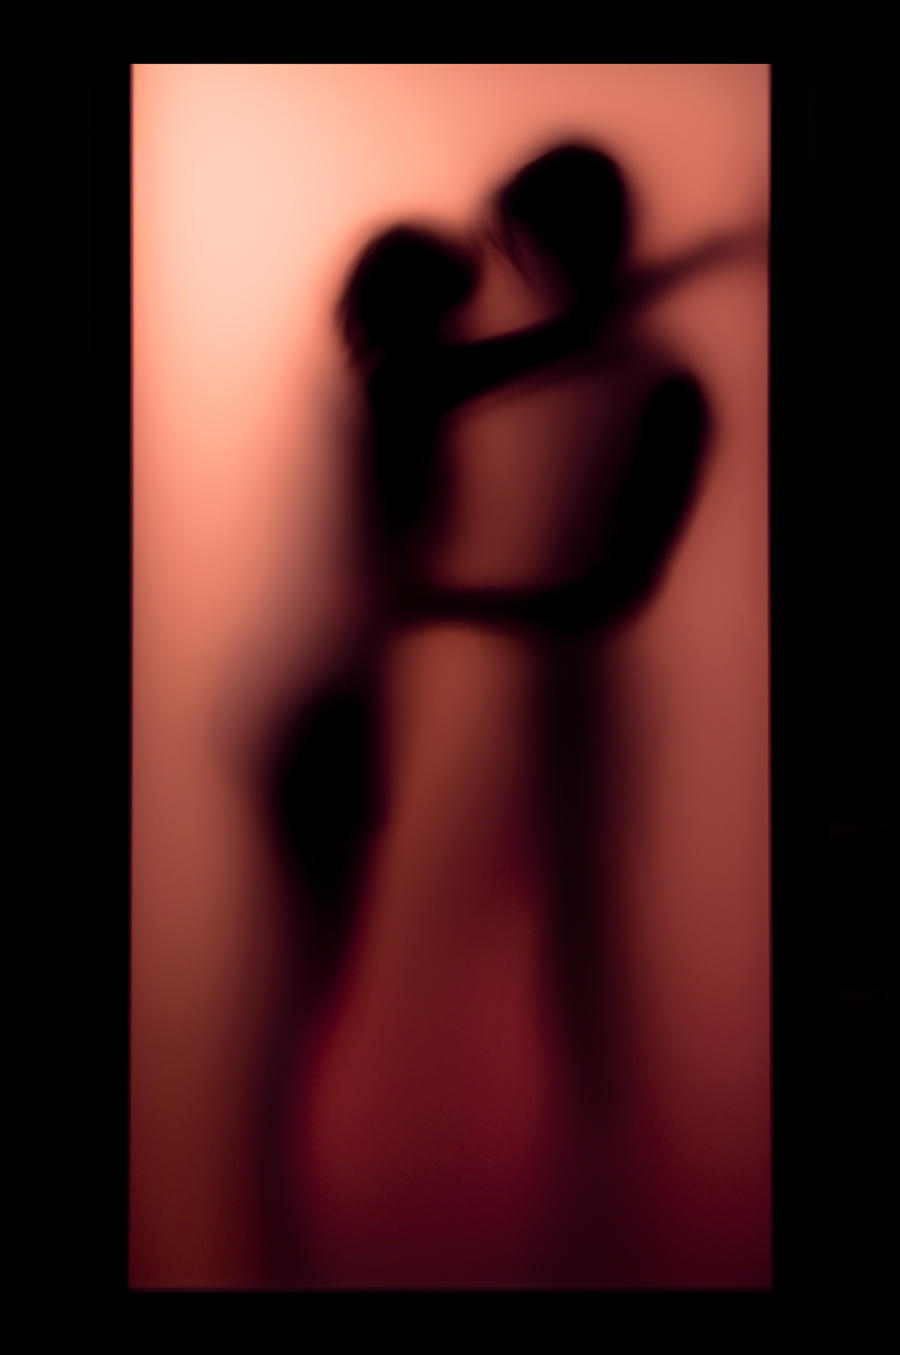 Lovers' silhouette by vallo29